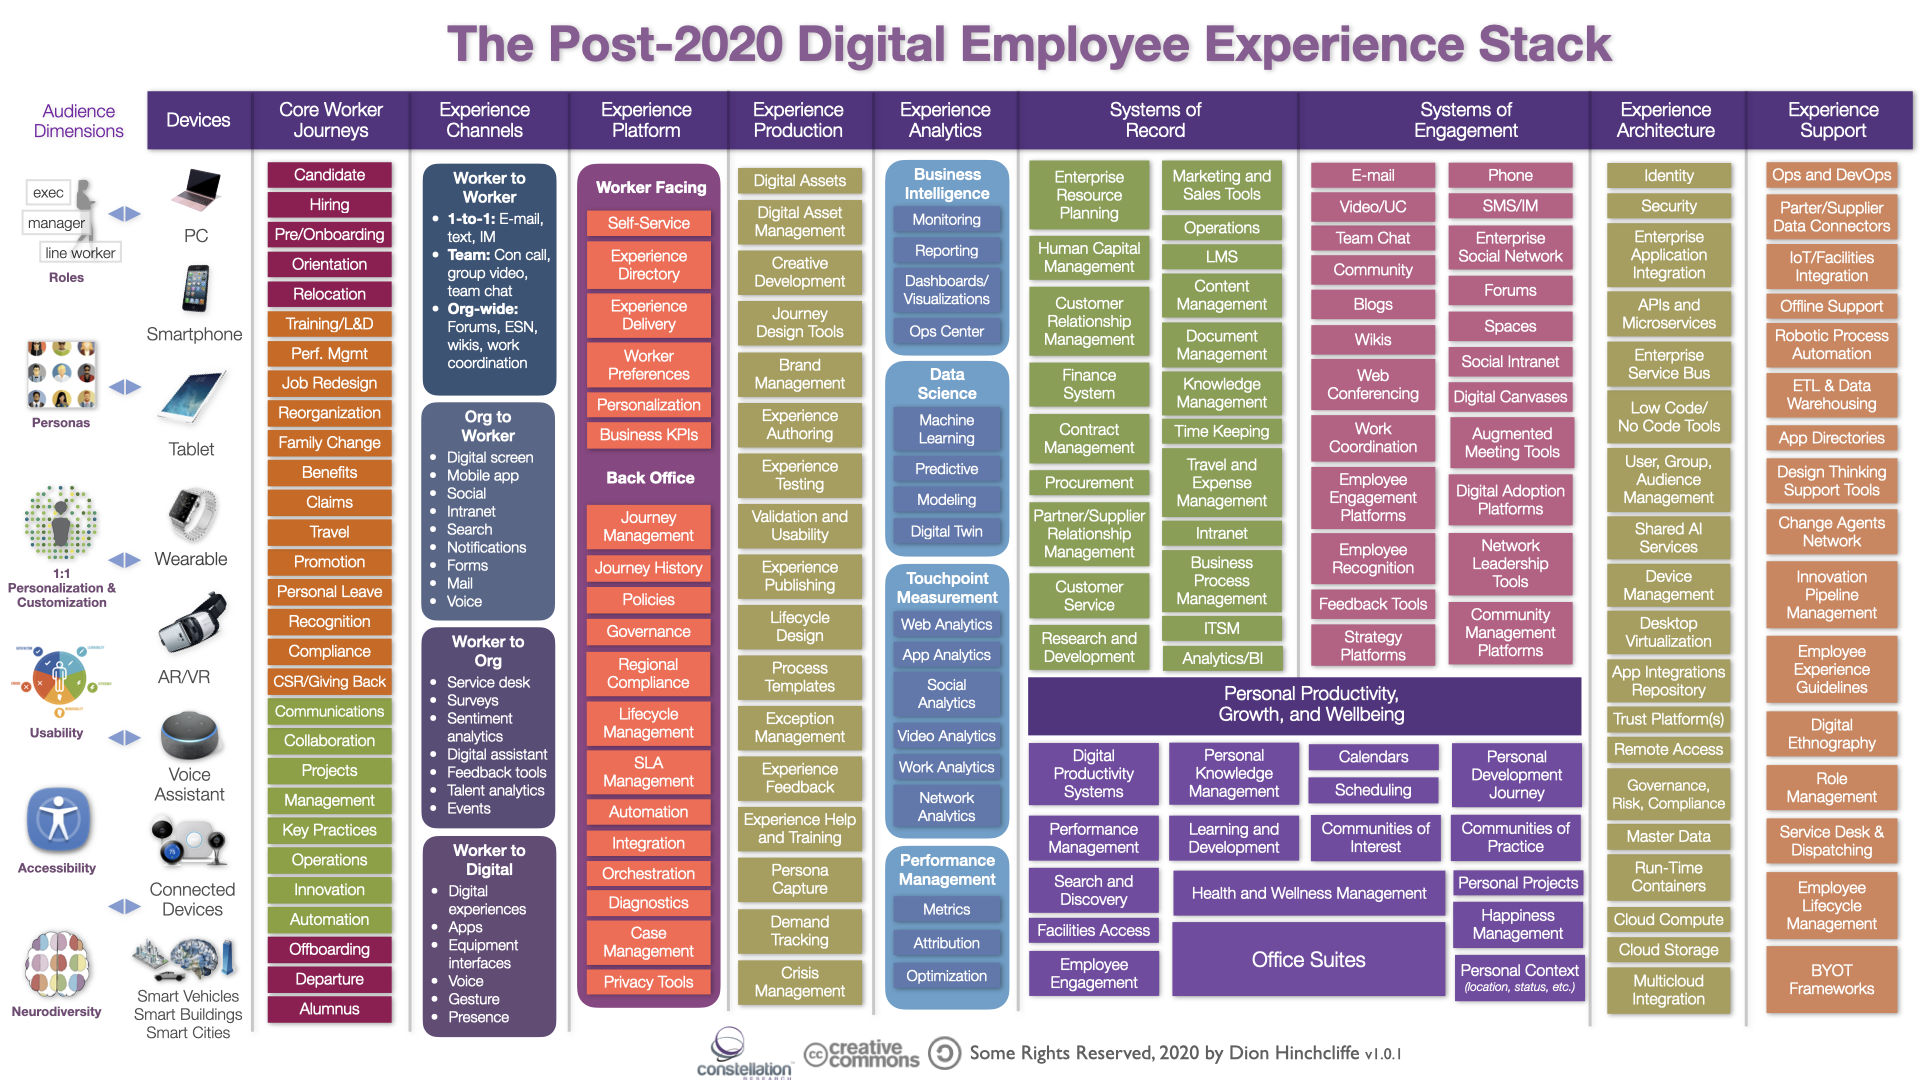 The Post-2020 Digital Workplace and Employee Experience Stack